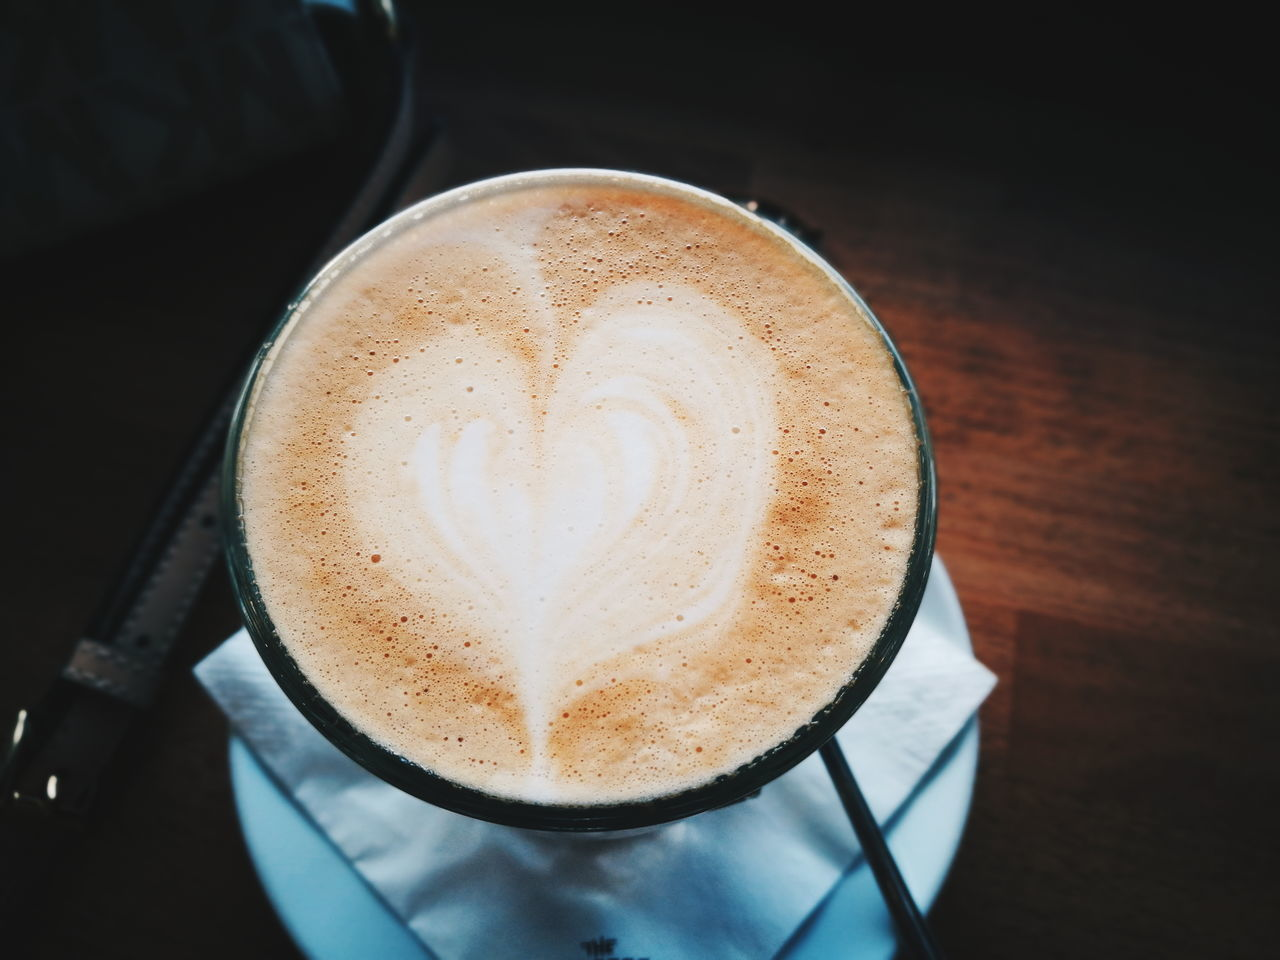 Relaxing c Coffee Cup Drink Coffee - Drink Food And Drink Refreshment Frothy Drink Latte Froth Art Cappuccino Table Espresso Froth No People Freshness Close-up Heart Shape Saucer Indoors  Directly Above Bubble